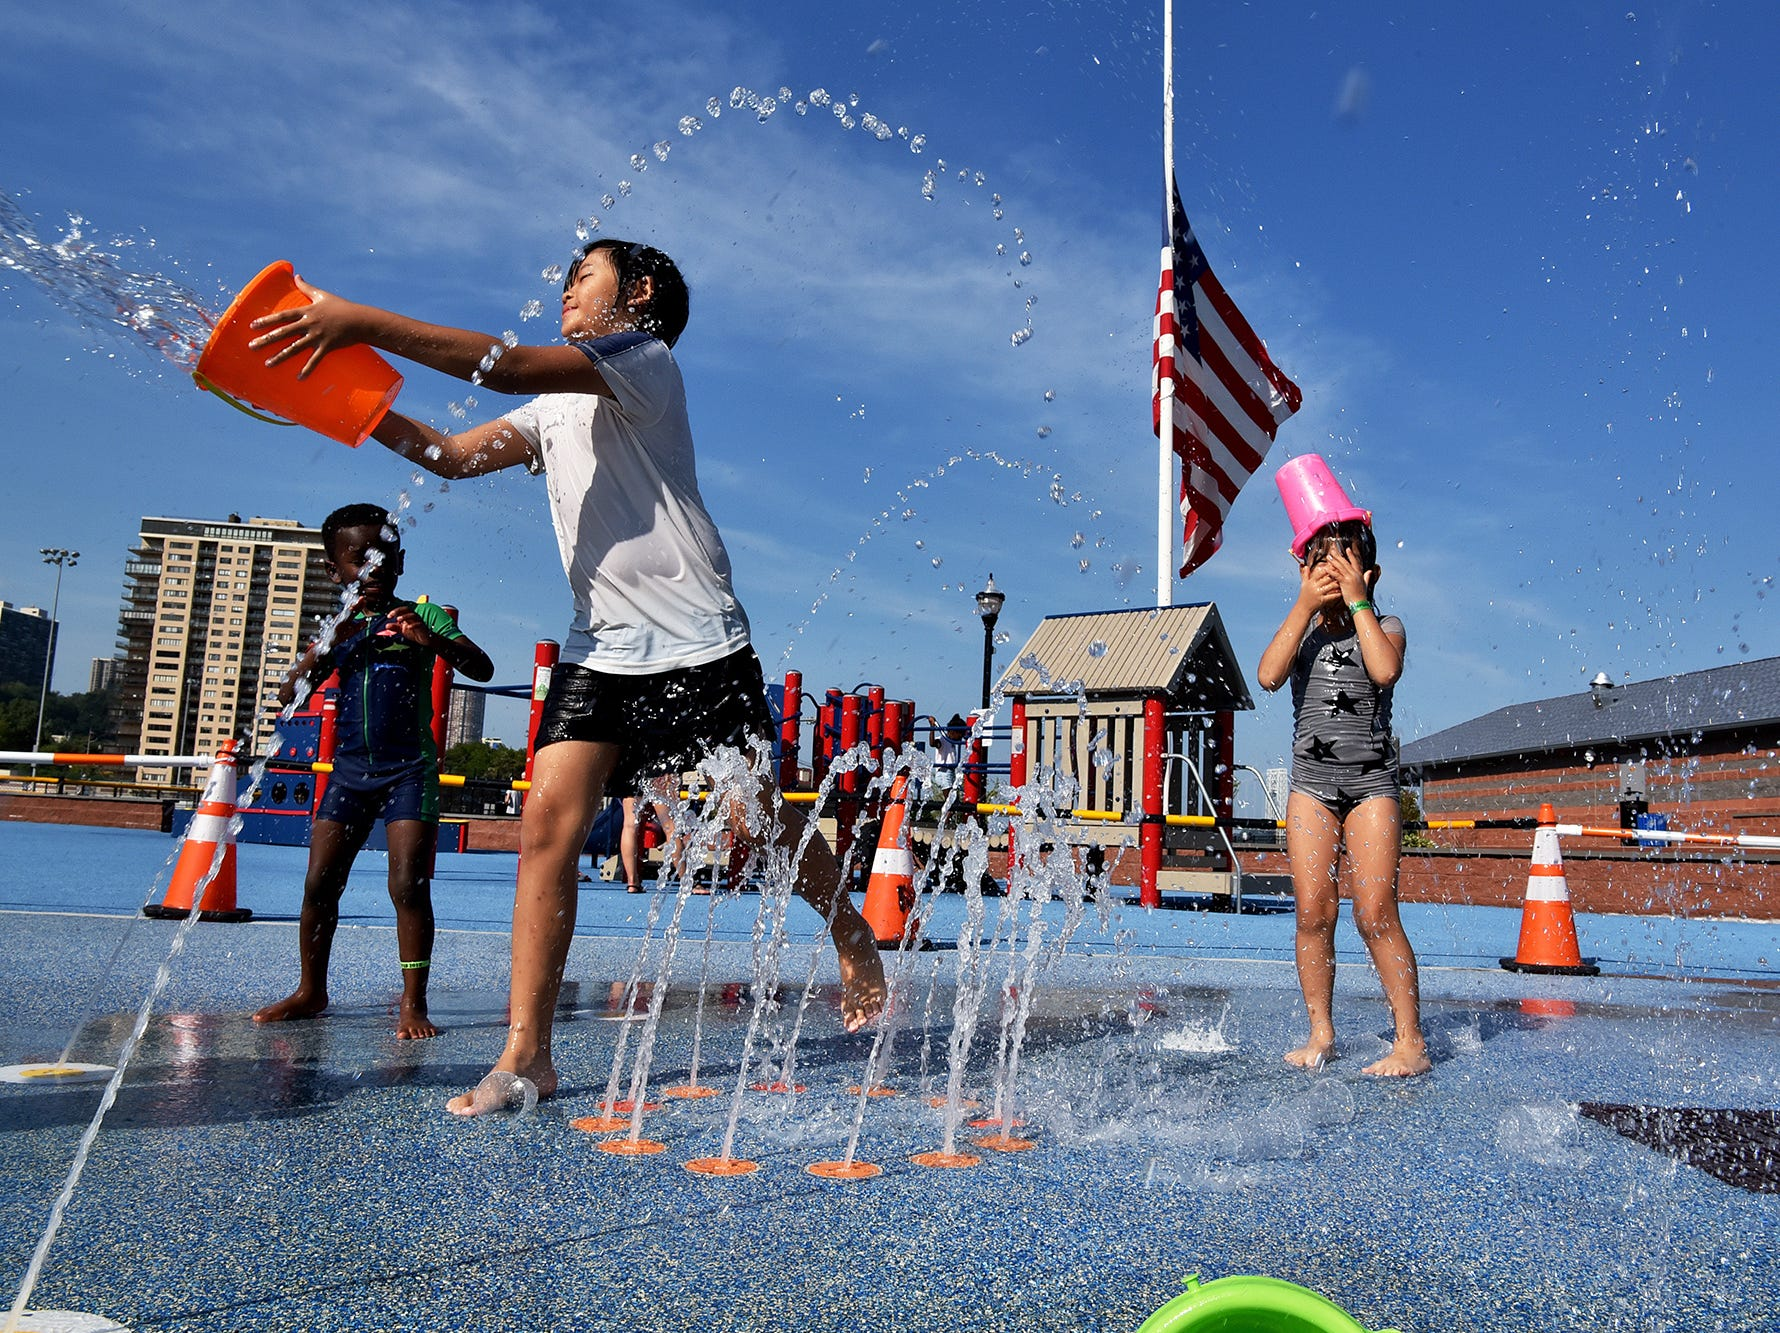 Children play at the sprinklers at Veterans Memorial field in Edgewater, NJ.